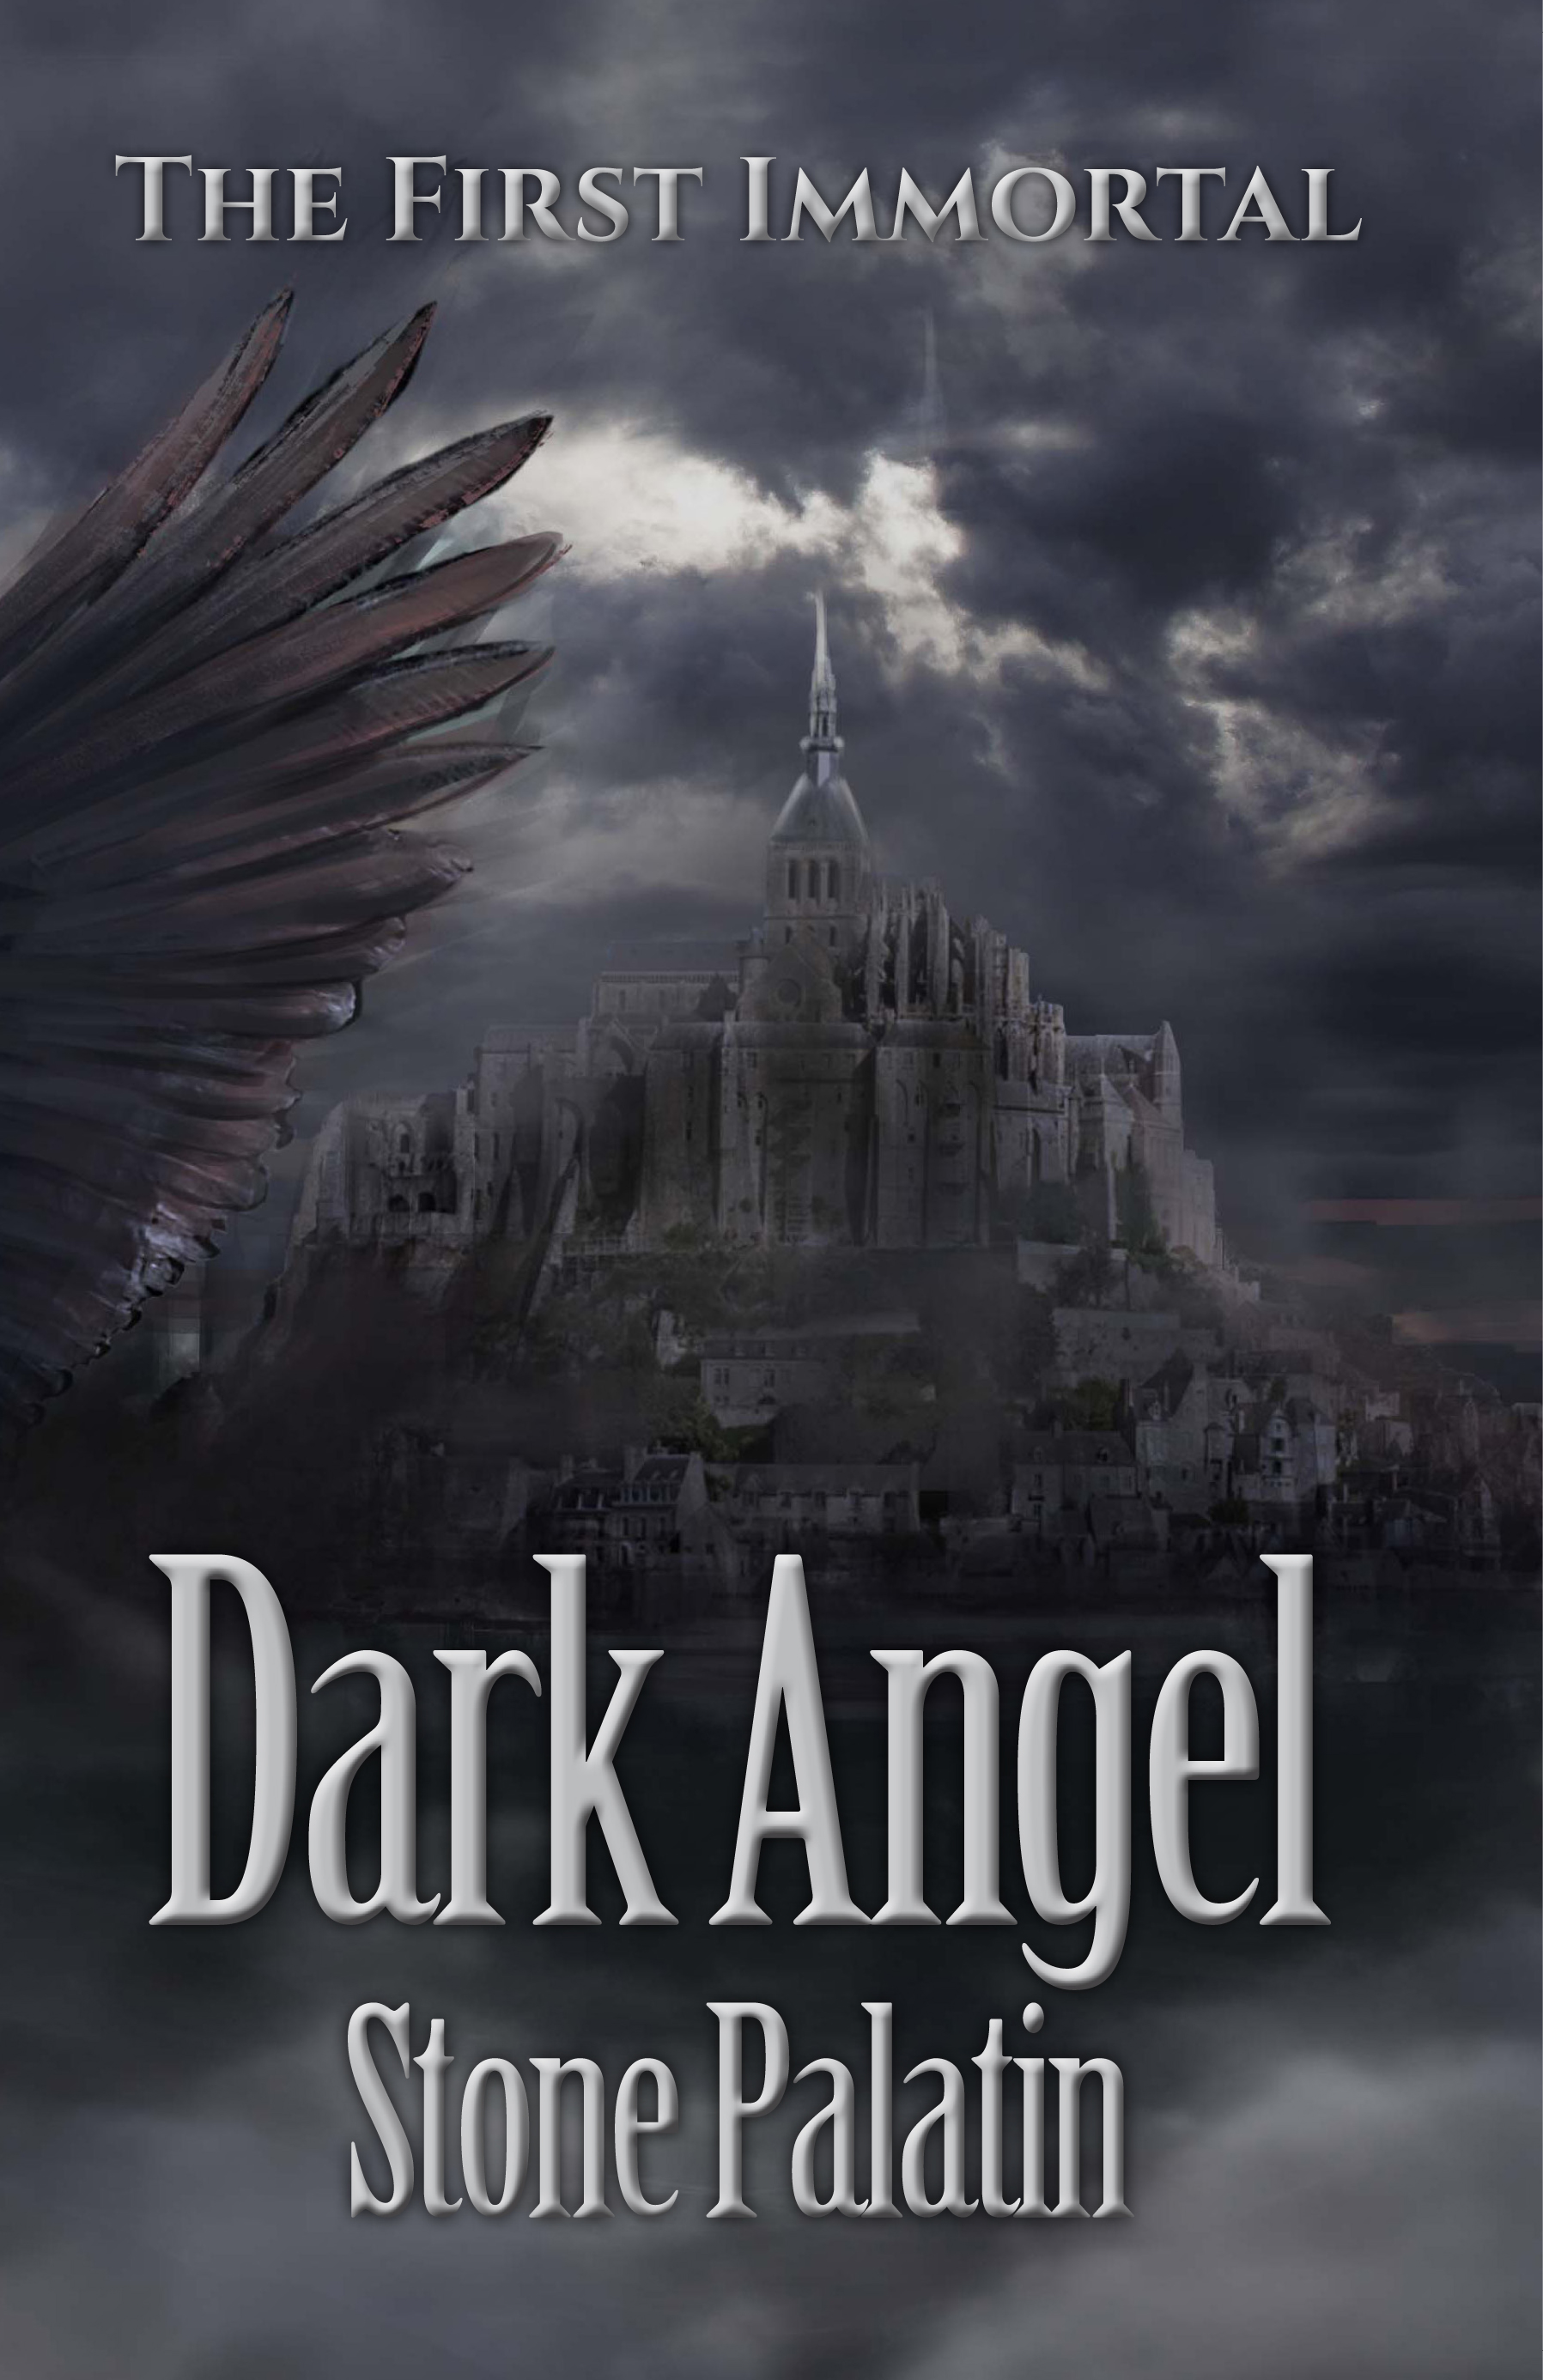 DarkAngel-cover.jpg